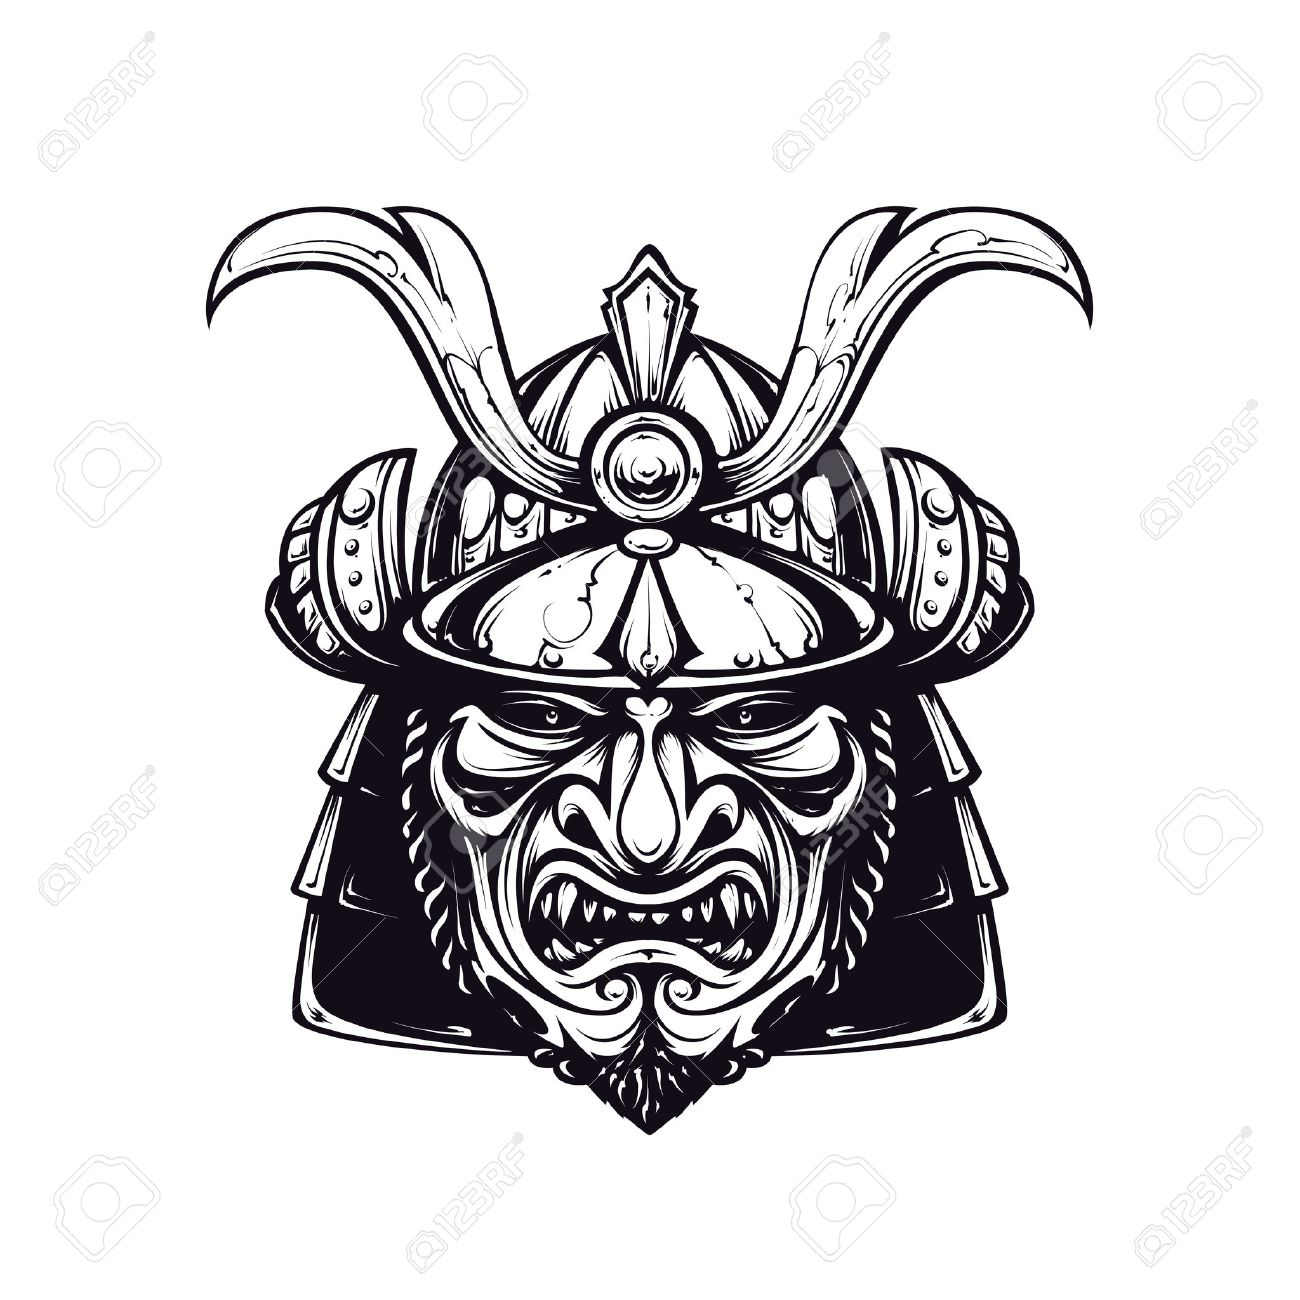 1300x1300 Samurai Mask Clip Art. Black And White Version Isolated On White